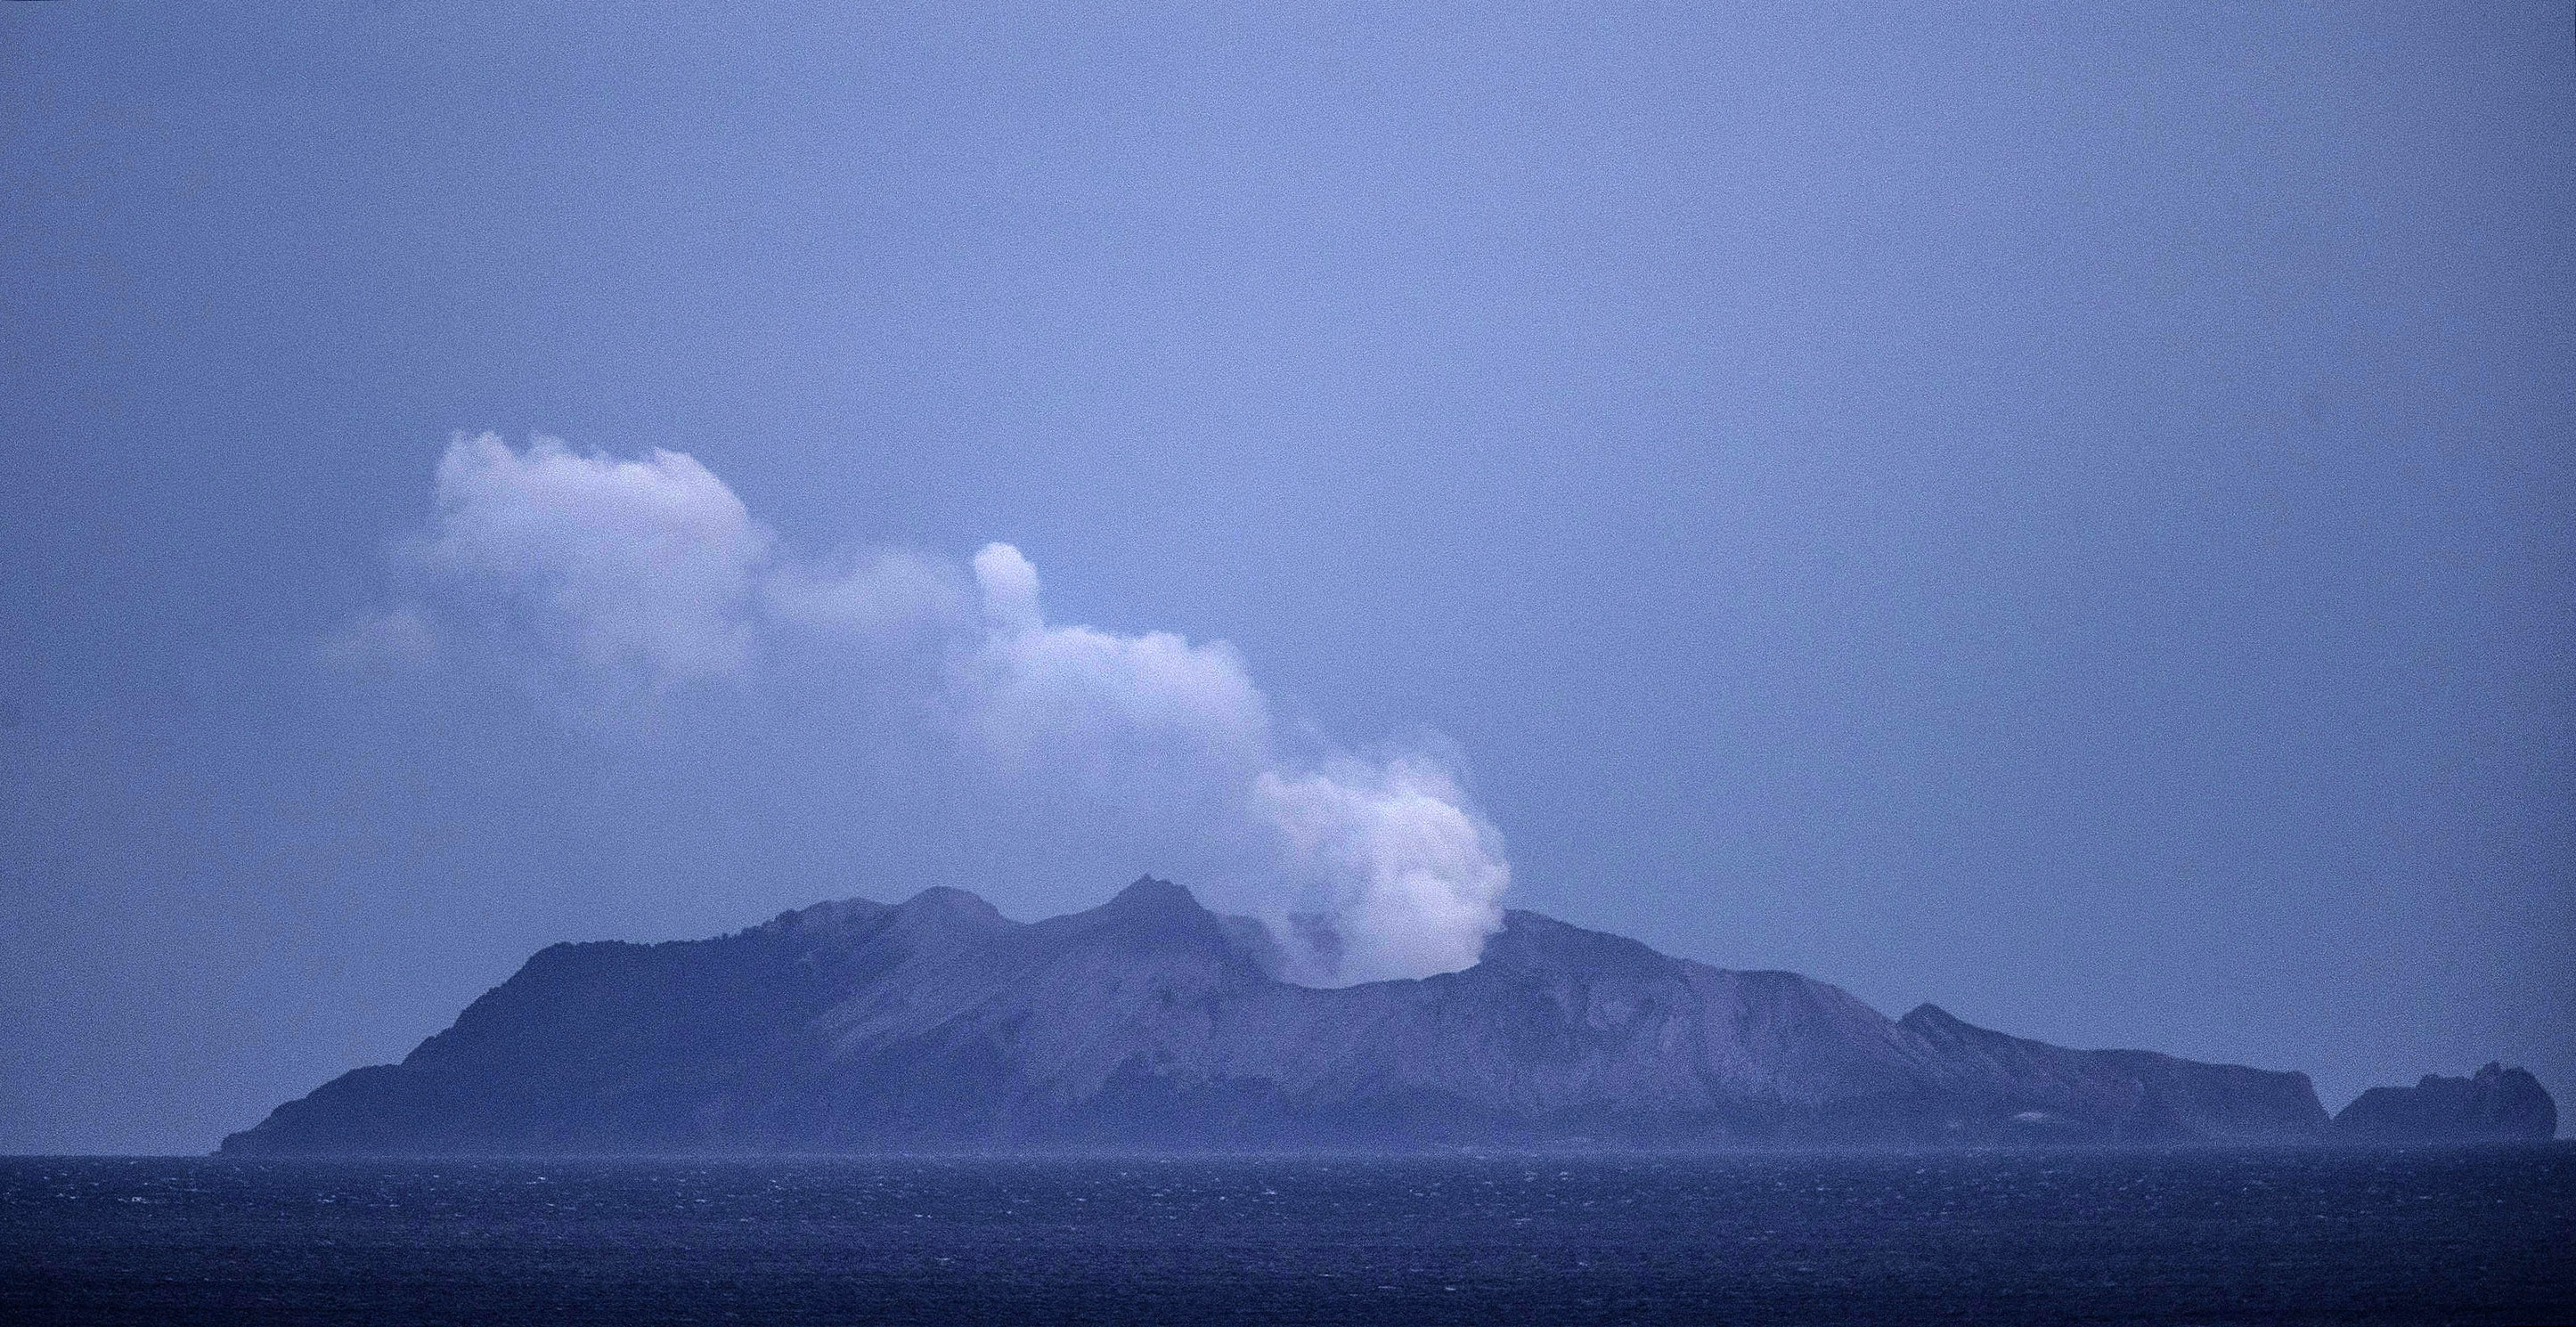 Smoke and ash rises from the volcano on White Island, New Zealand, on December 10, 2019.